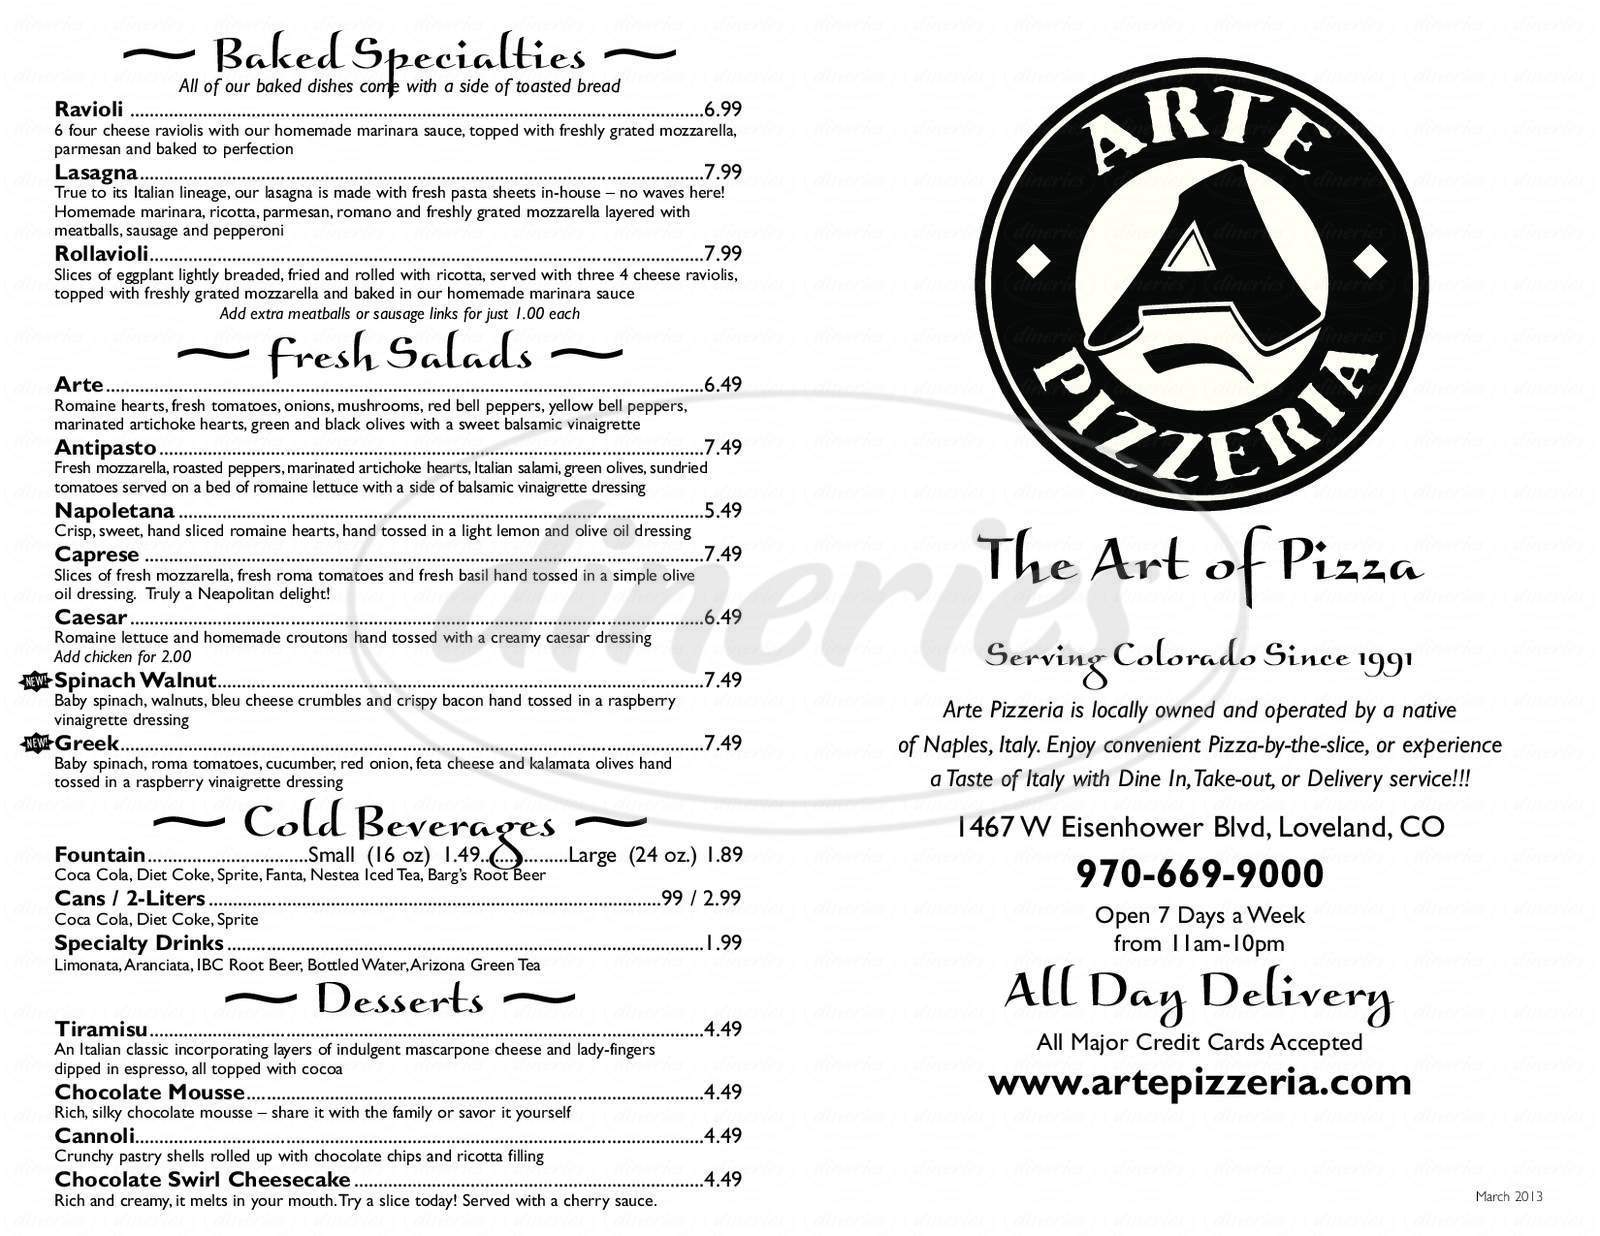 menu for Arte Pizzeria